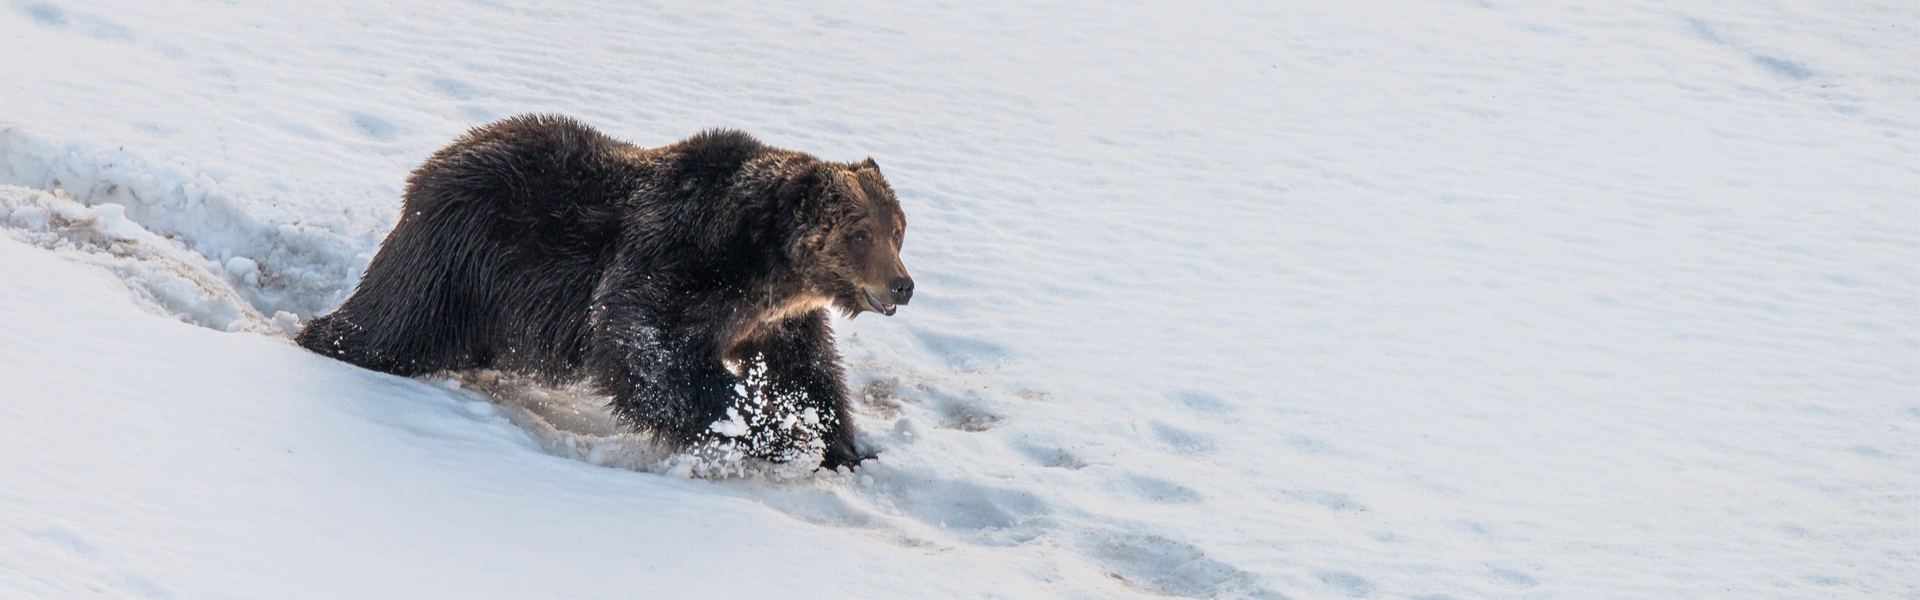 Arctic Grizzly Hunts